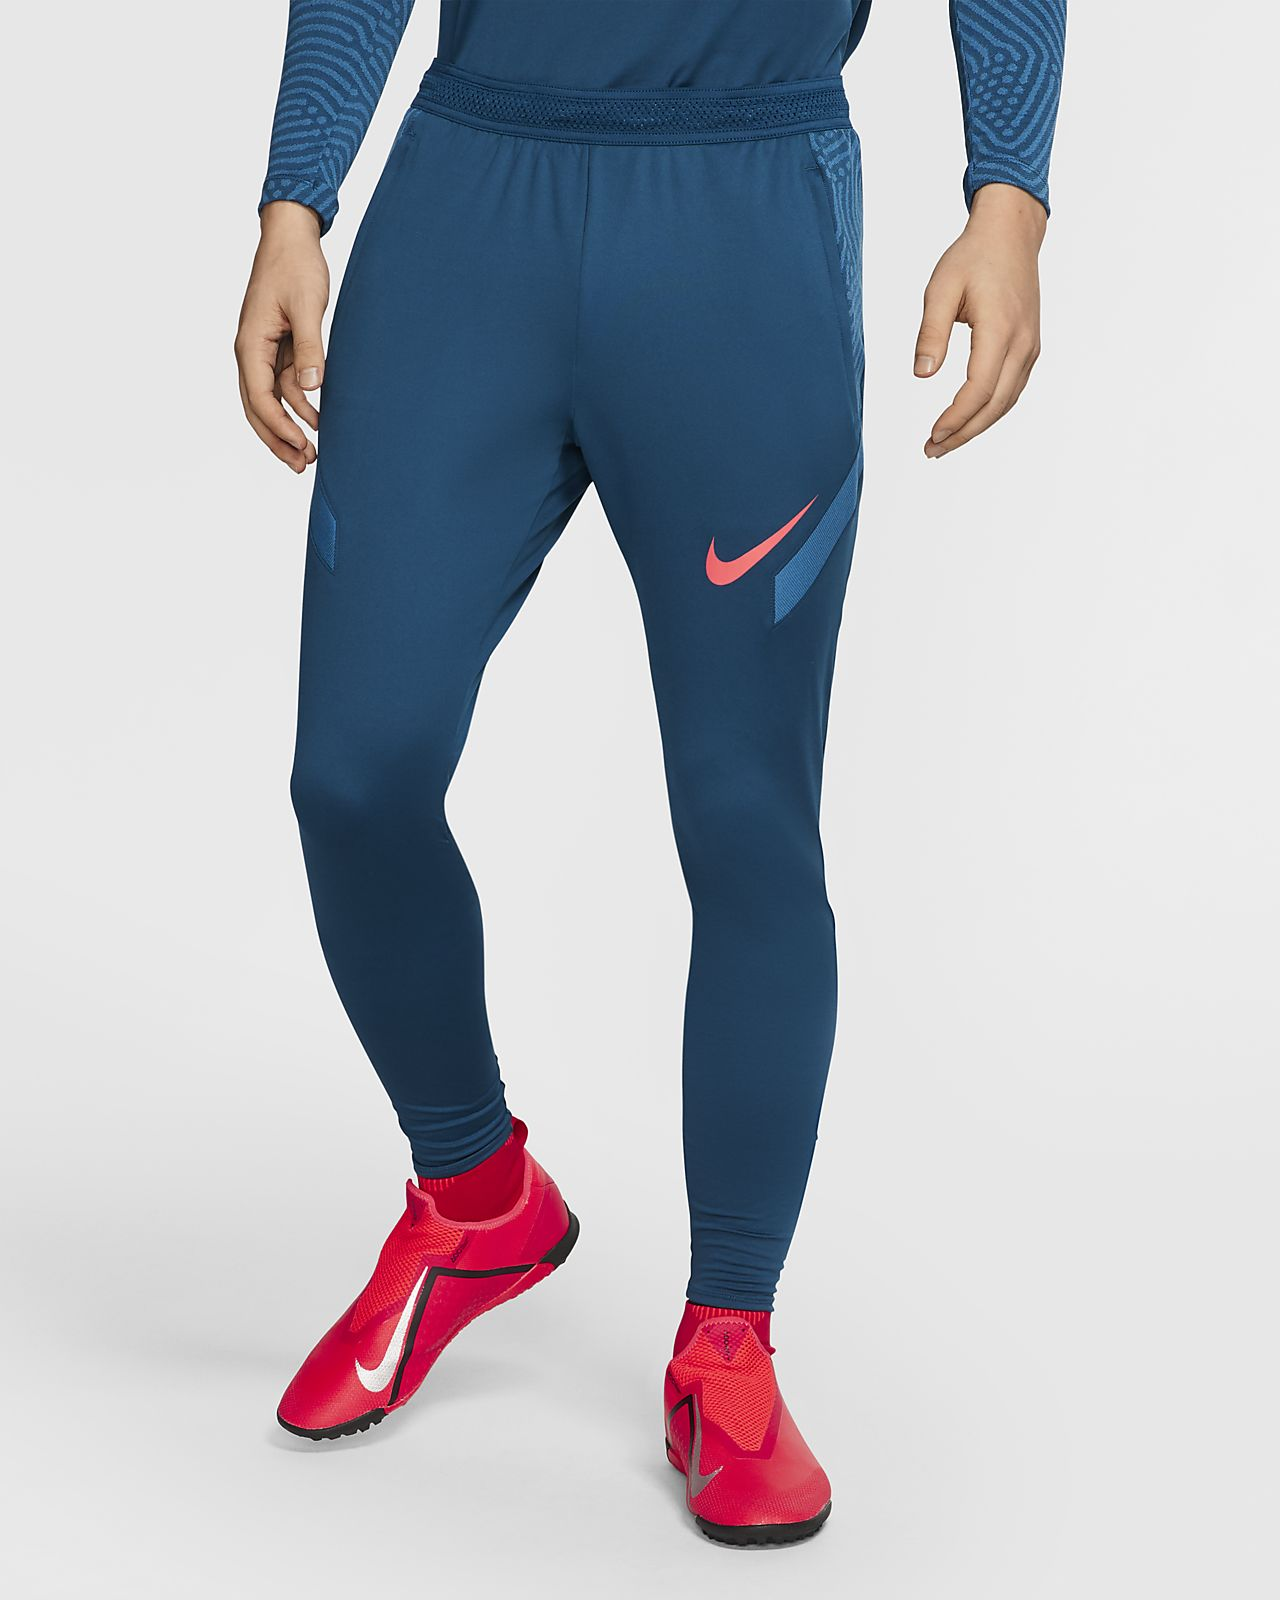 Herren Hosen & Tights. Nike AT